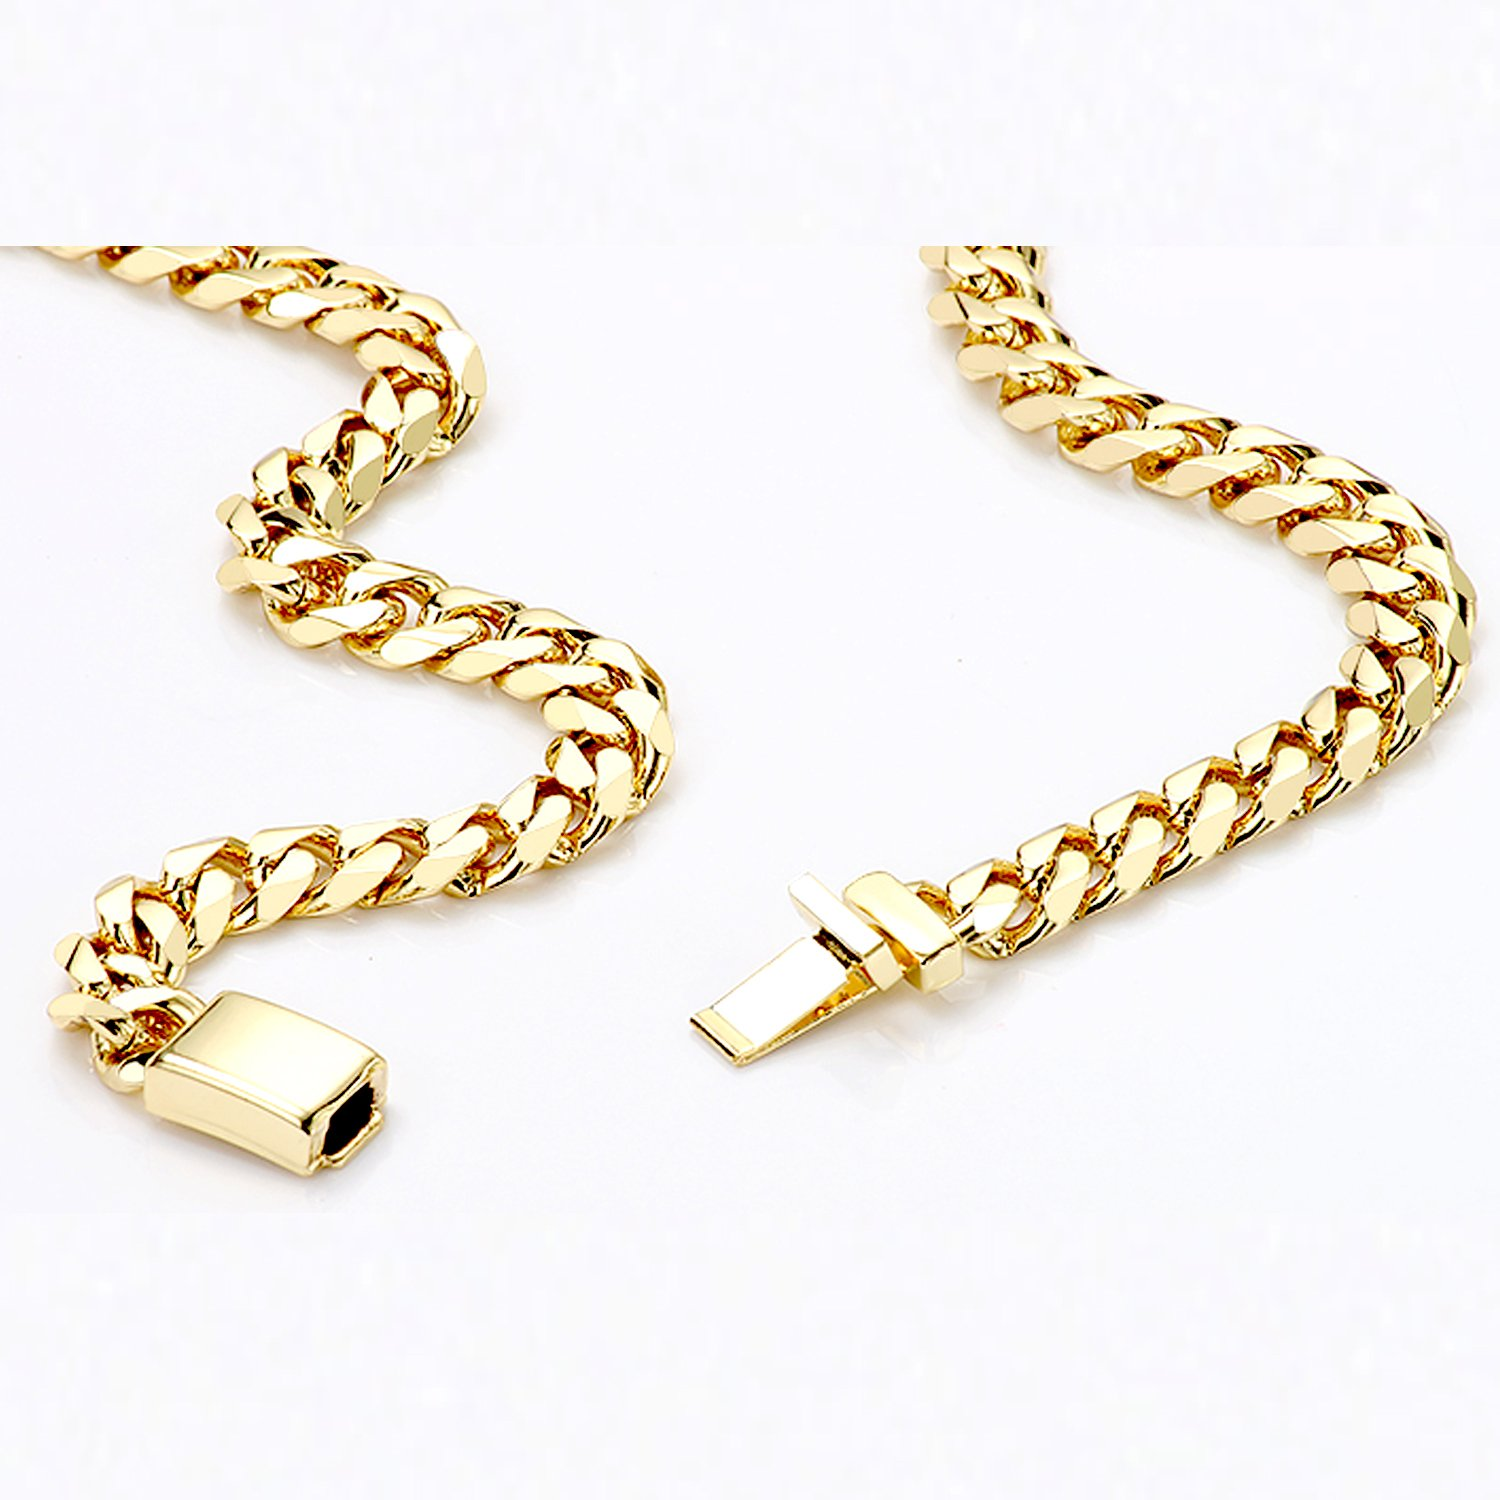 Gold Cuban Link Chain Necklace for Men Real 11MM 24K Karat Diamond Cut Heavy w Solid Thick Clasp US Made